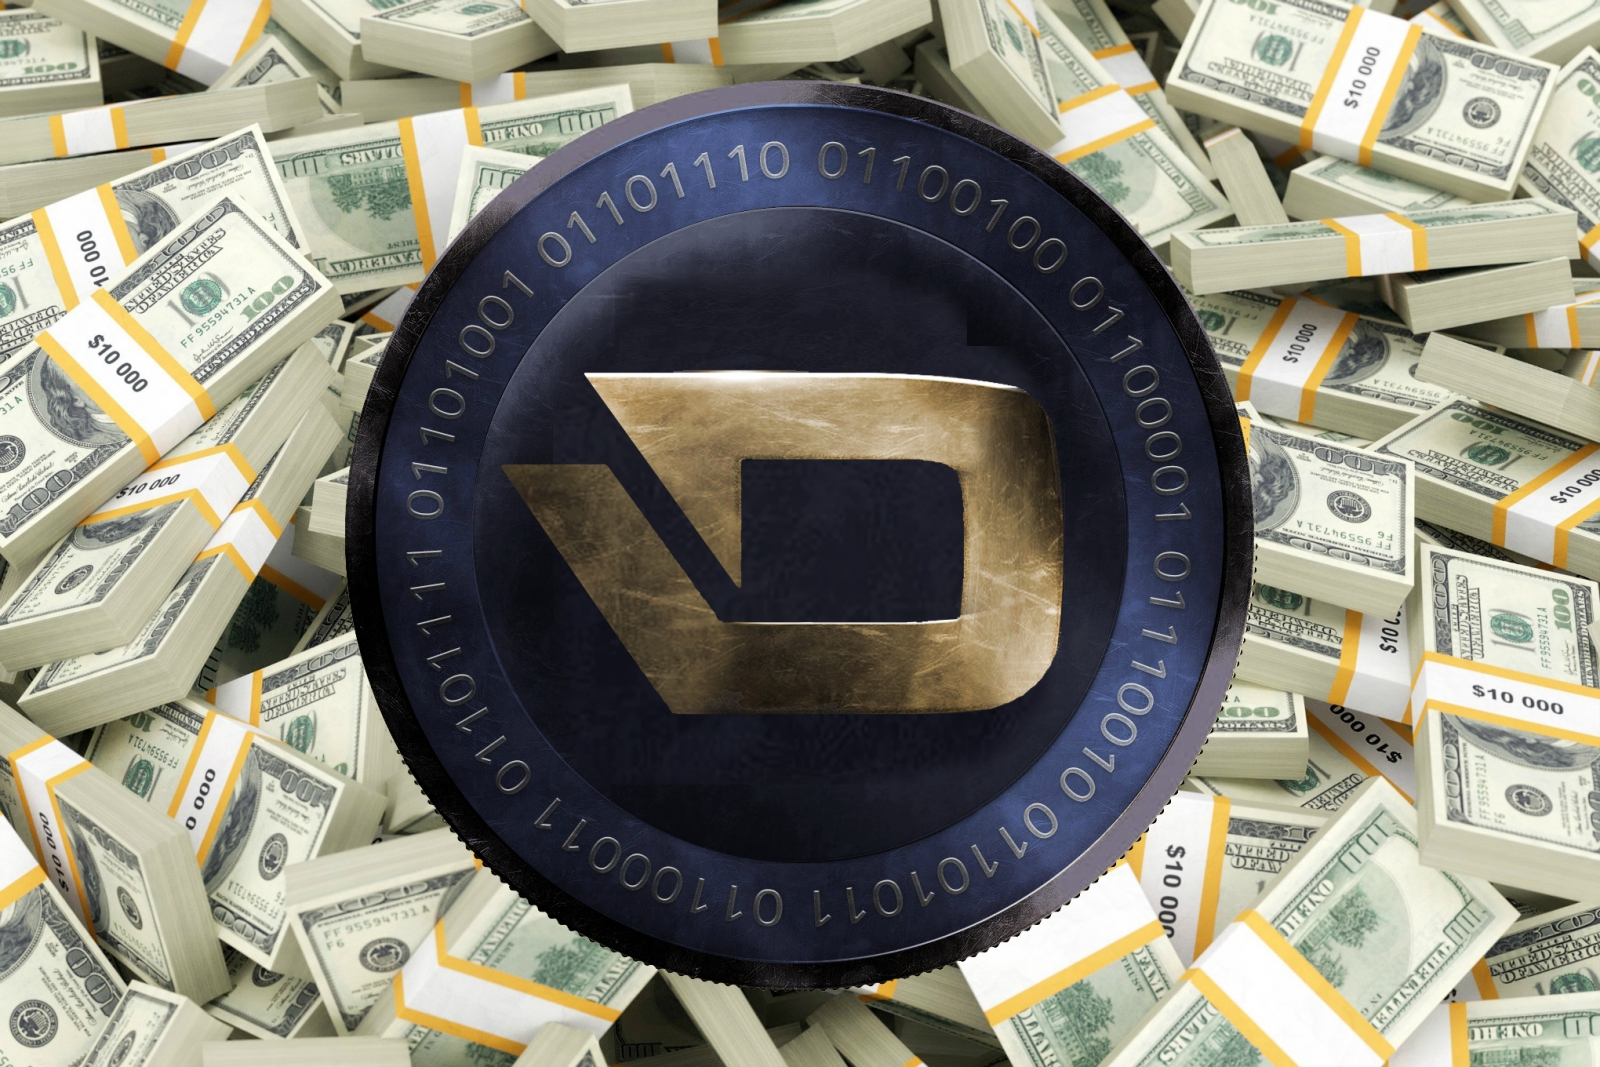 Darkcoin: The 'perfect Ecash' Cryptocurrency Emerging From The Dark Web To  Trump Bitcoin